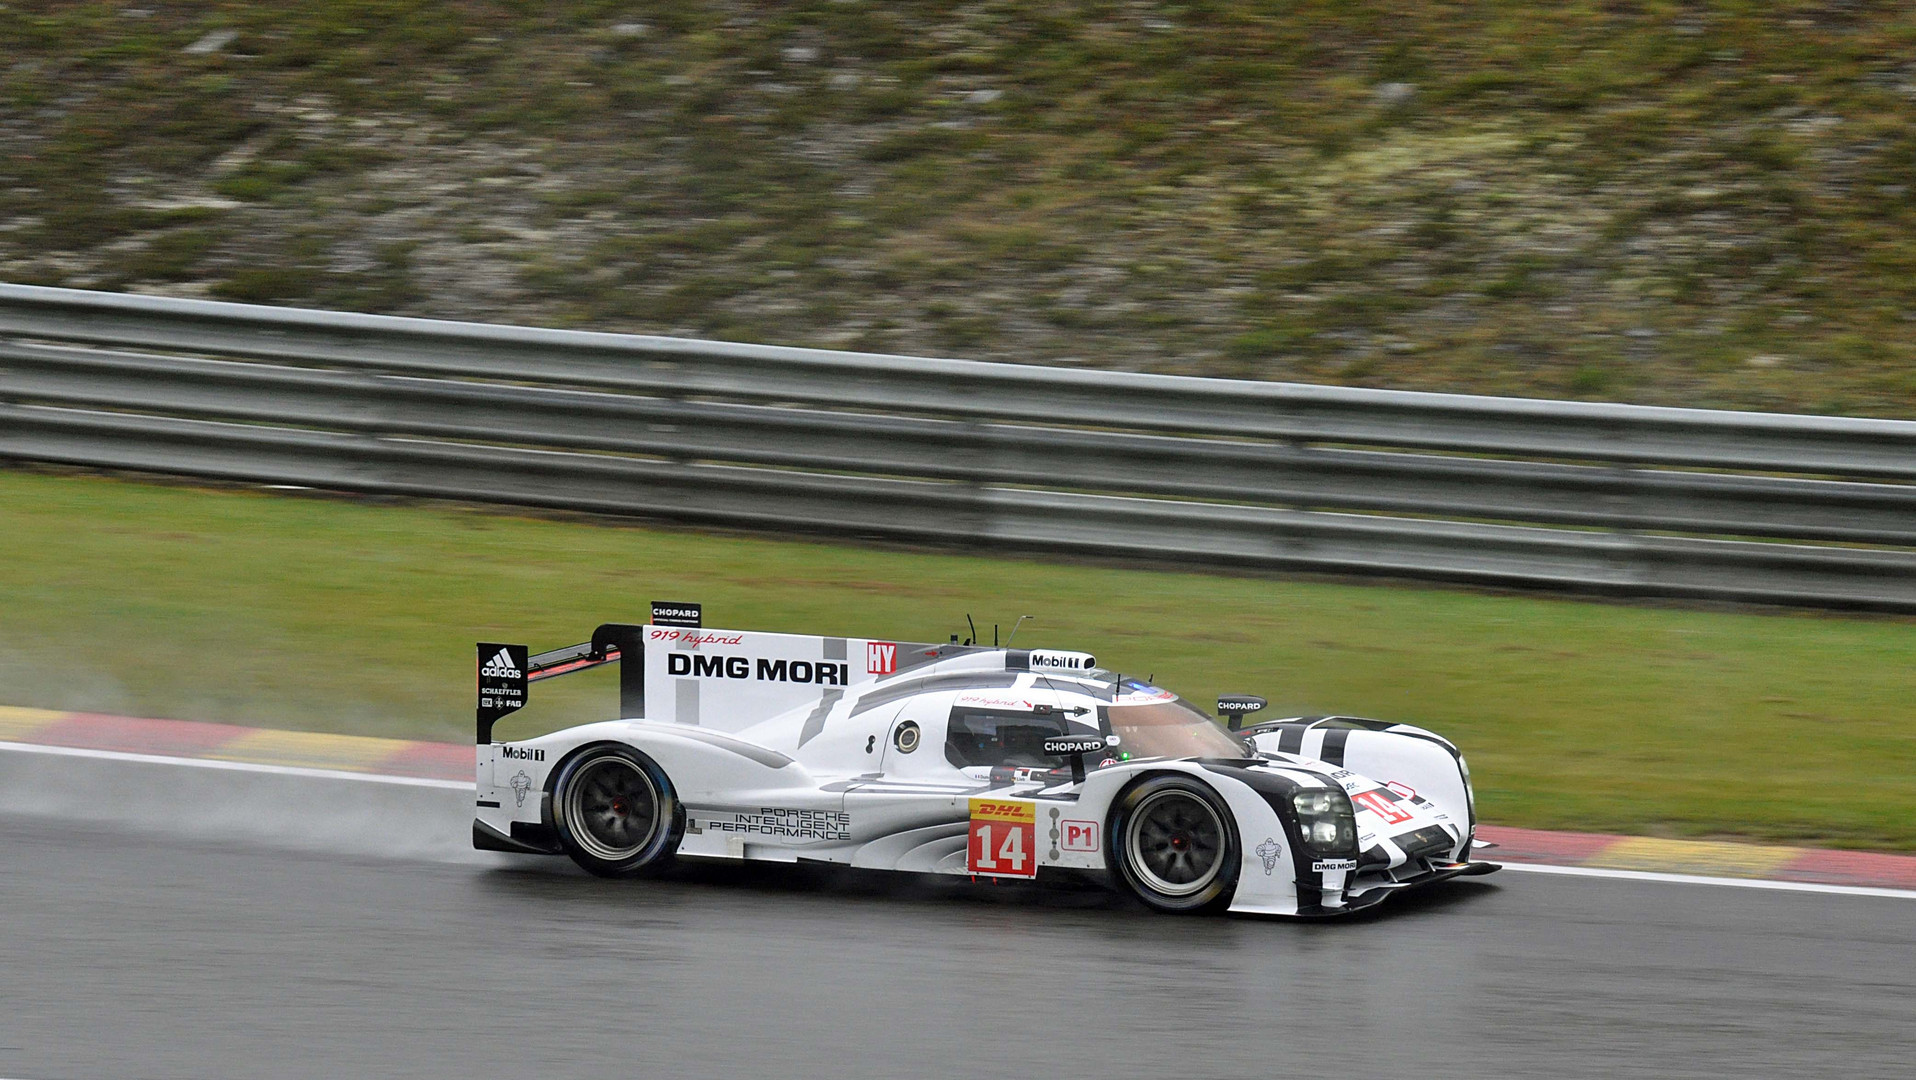 Back to Spa-Francorchamps